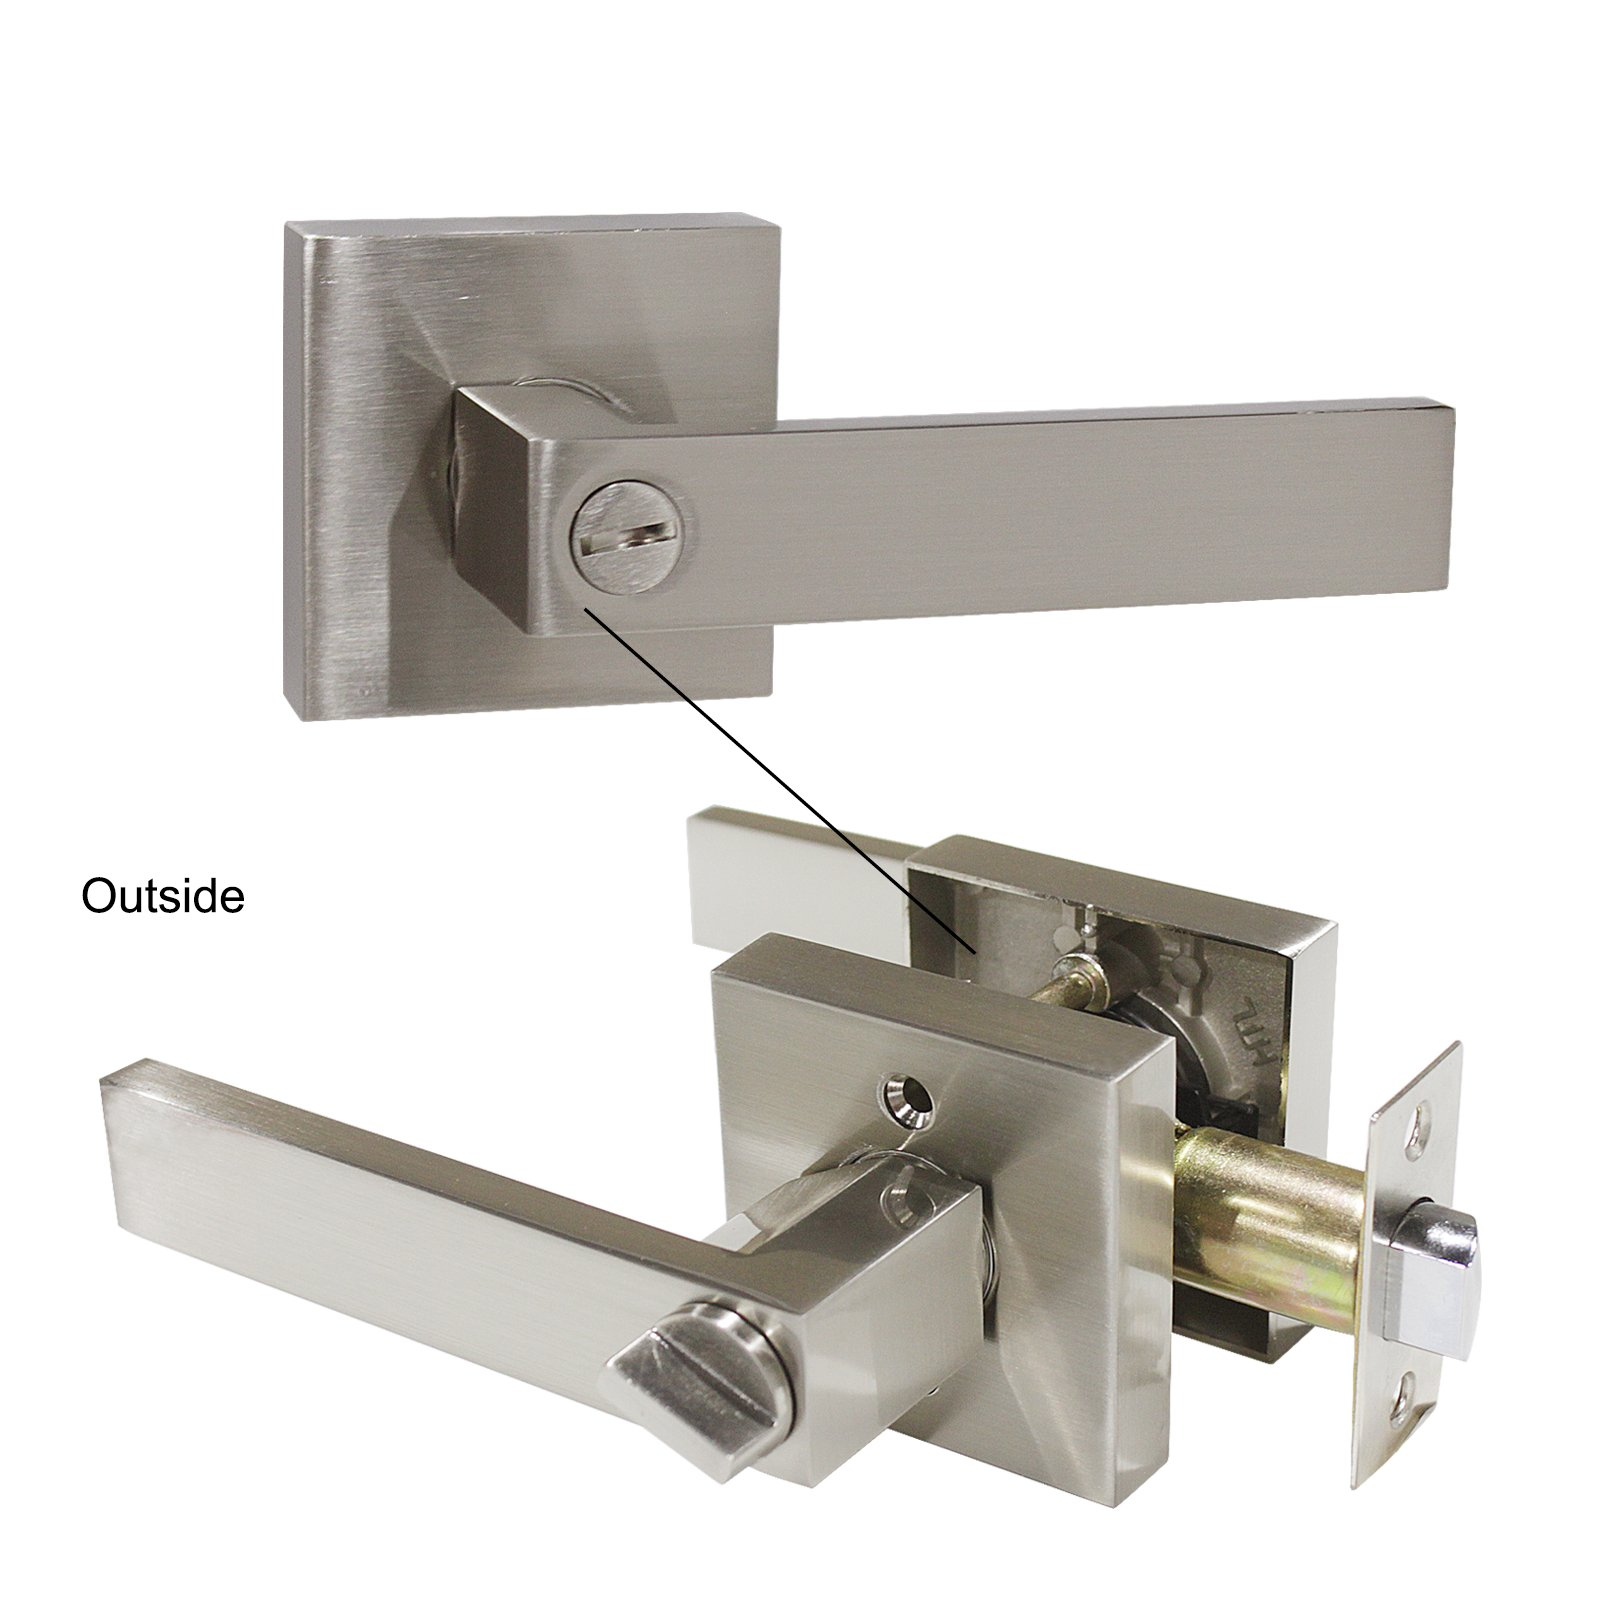 Gobrico Bedroom Bathroom Door Handle Lever with Square Plate Interior Privacy Door Lock in Satin Nickel 10Pack by Gobrico (Image #7)